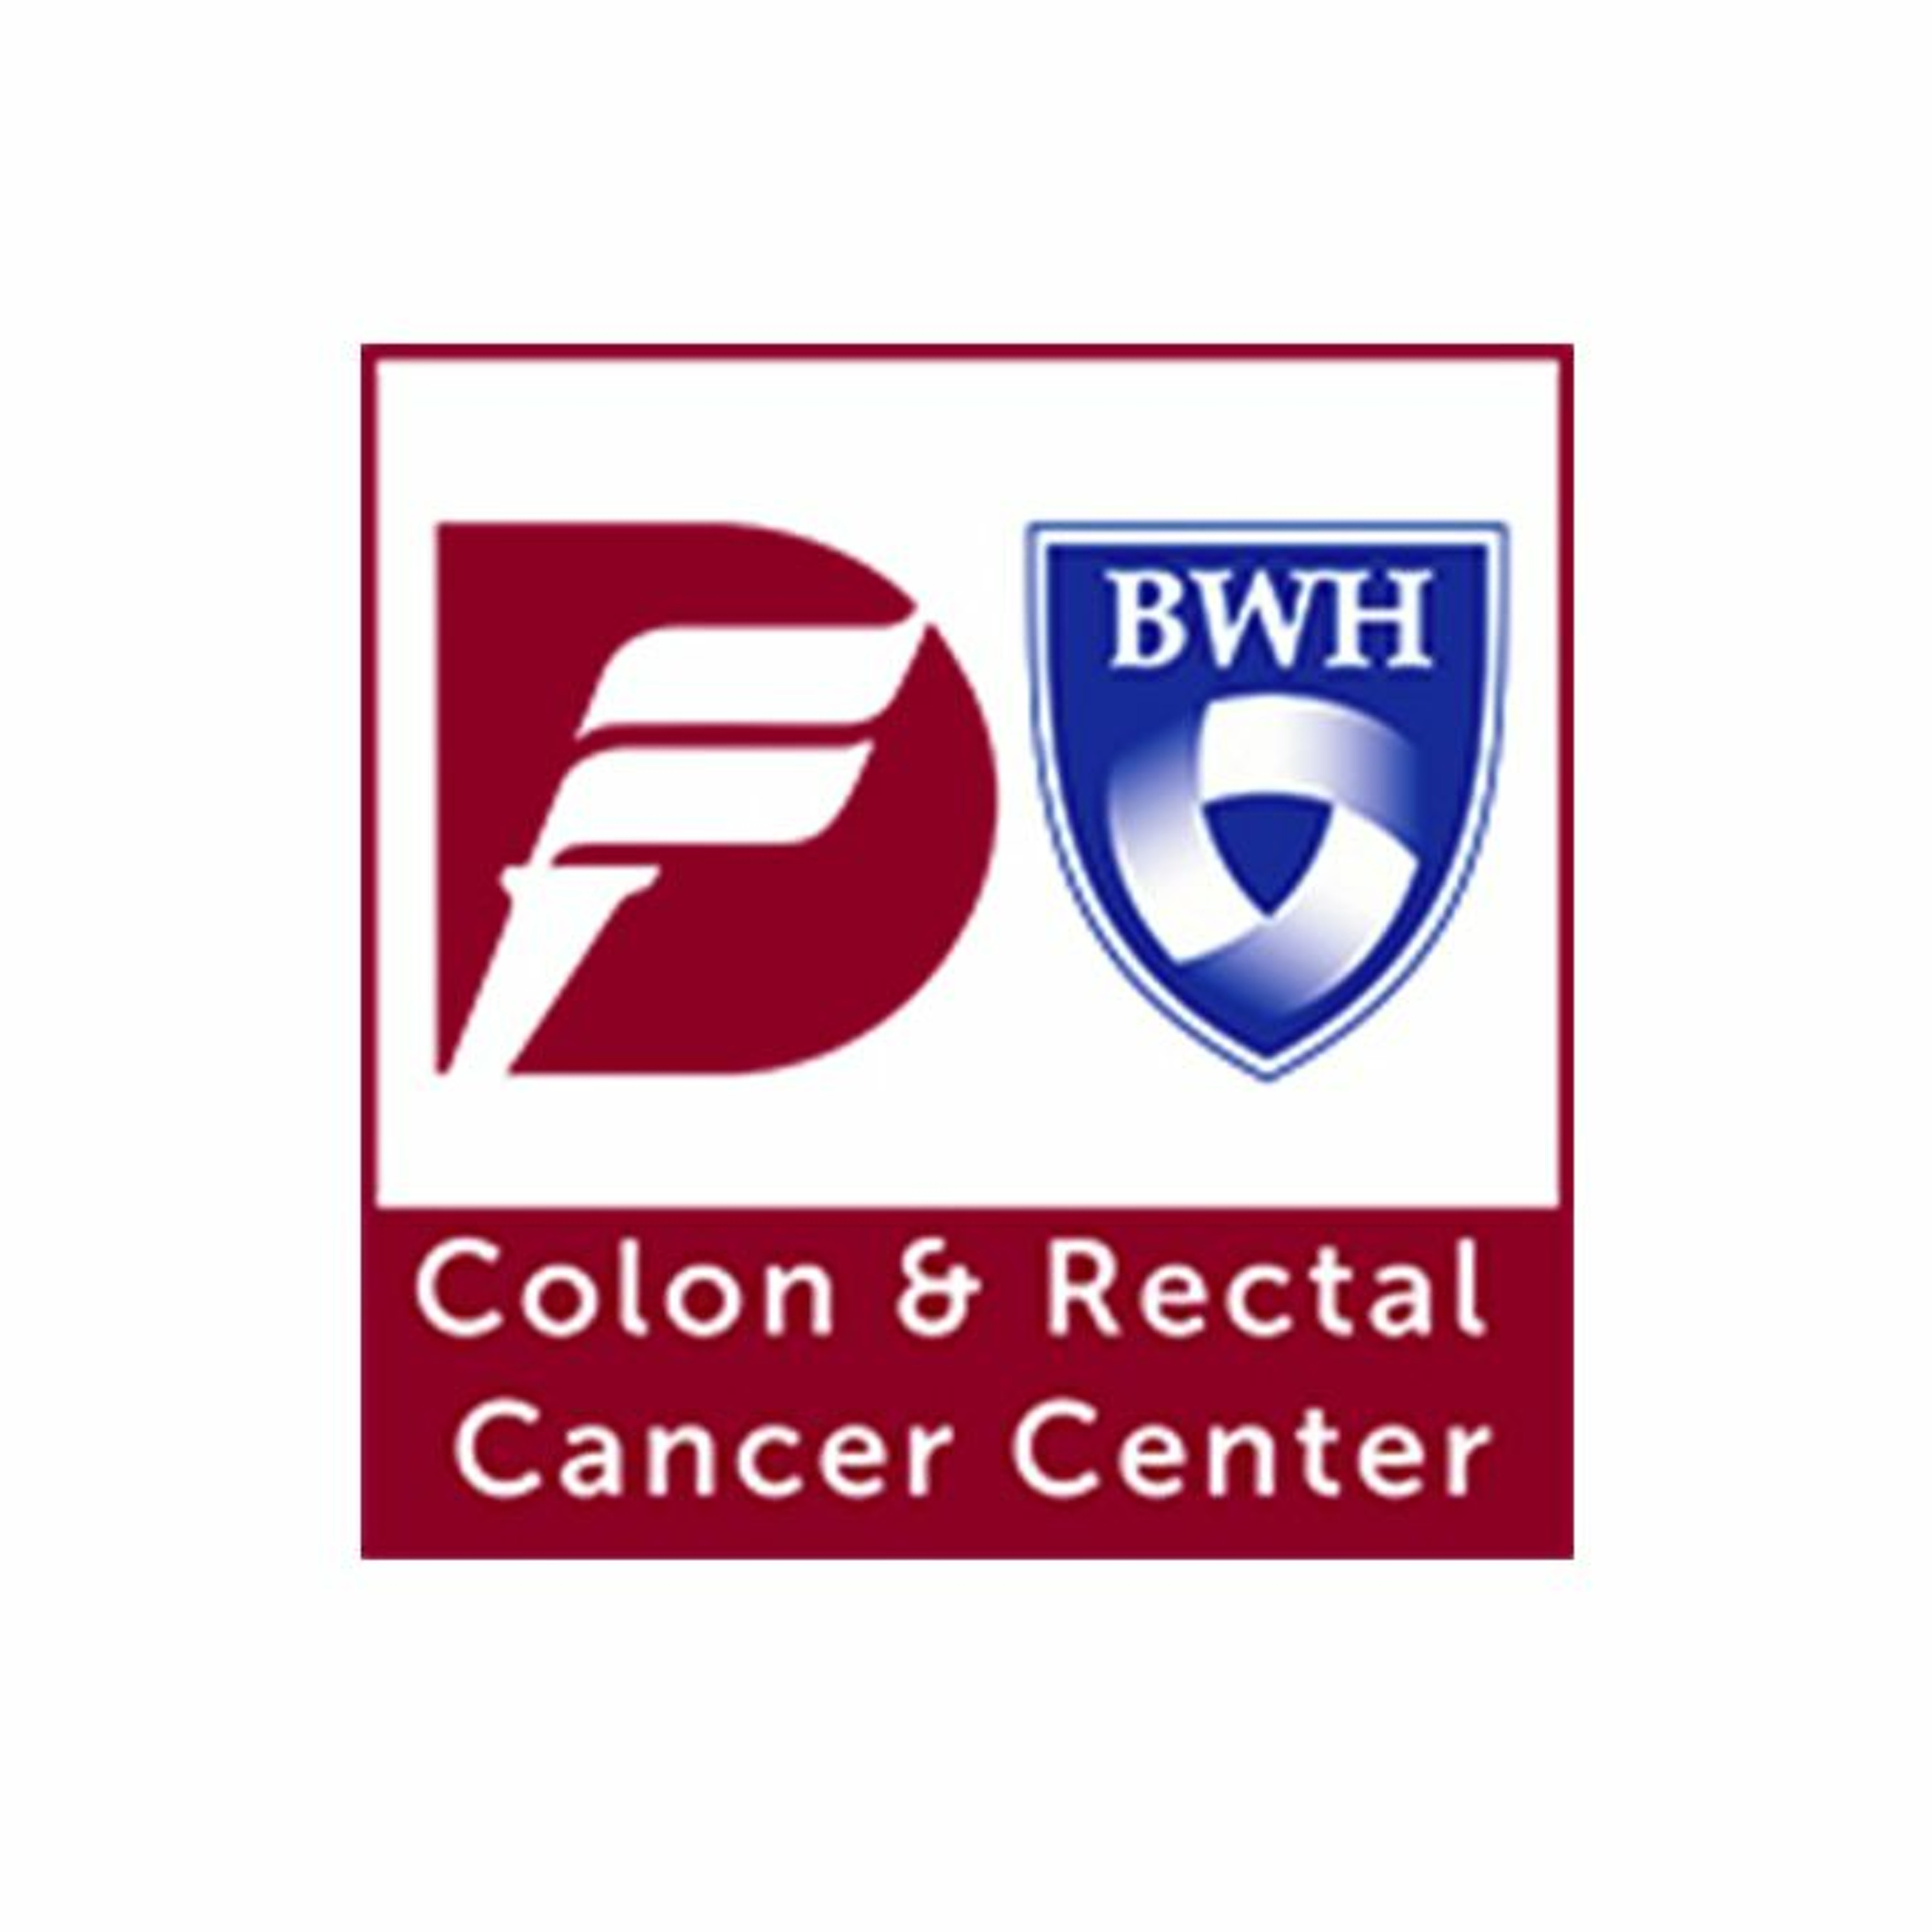 Episode 9 Heated Intraperitoneal Chemotherapy Hipec How We Treat Colon And Rectal Cancer Lyssna Har Poddtoppen Se